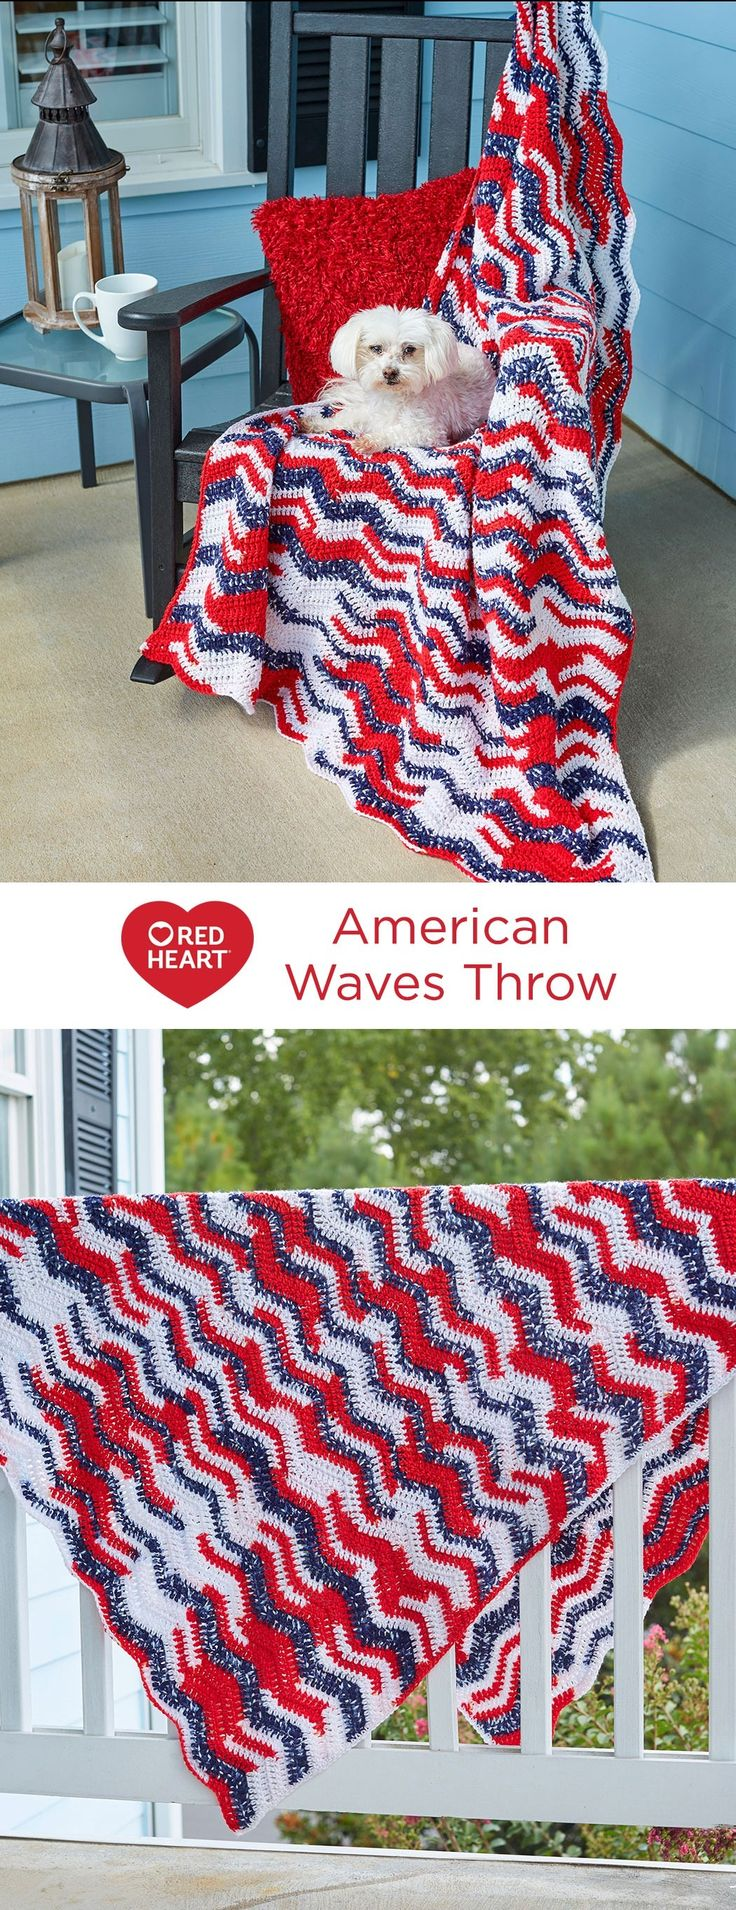 American Waves Throw Free Crochet Pattern in Red Heart Yarns -- From sea to shining sea, here's a throw to please every American! It's the perfect choice to crochet as a gift to those who are serving in our military or have served in the past. This yarn changes color for you, so there are very few ends to weave in and your crochet will move along smoothly.